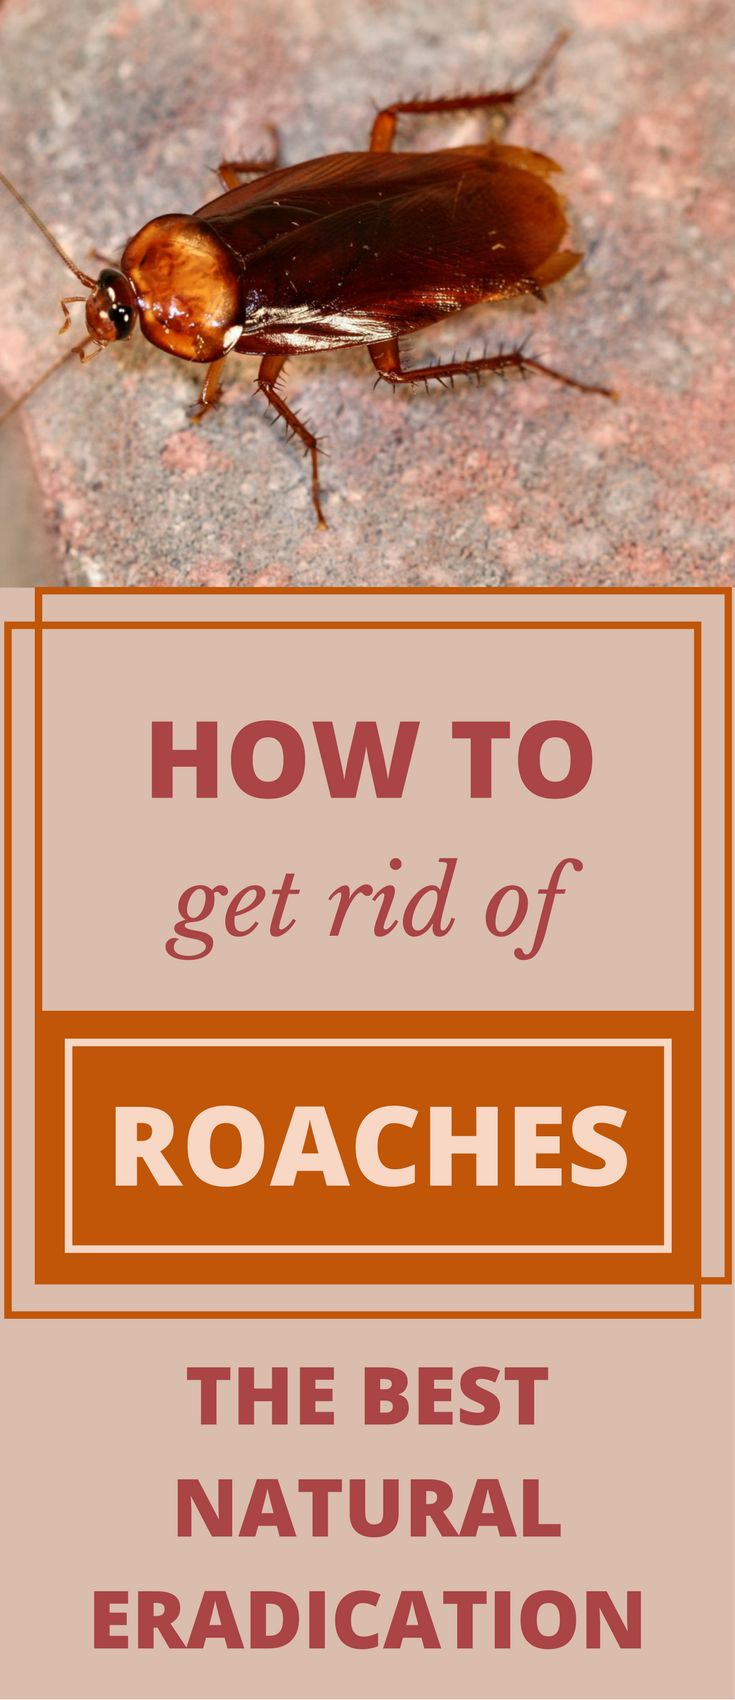 Natural Substances That Get Rid Of Roaches